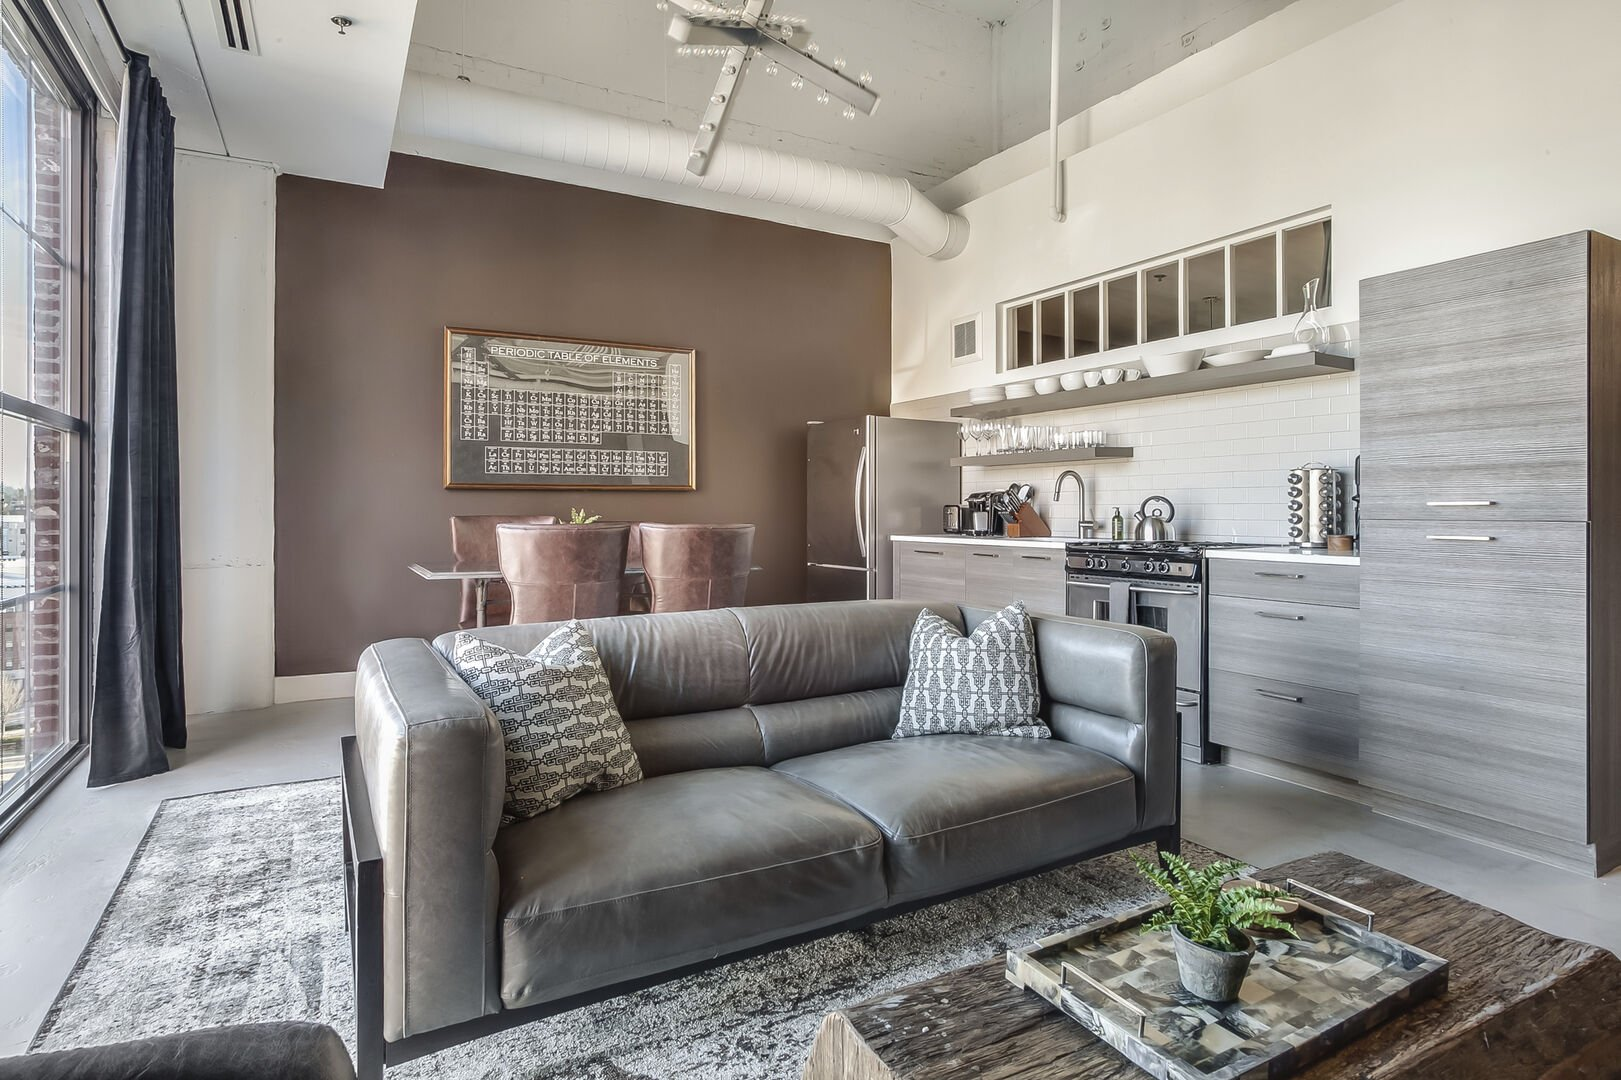 Living Area with Gray Leather Sofa at Ponce City Market Apartment